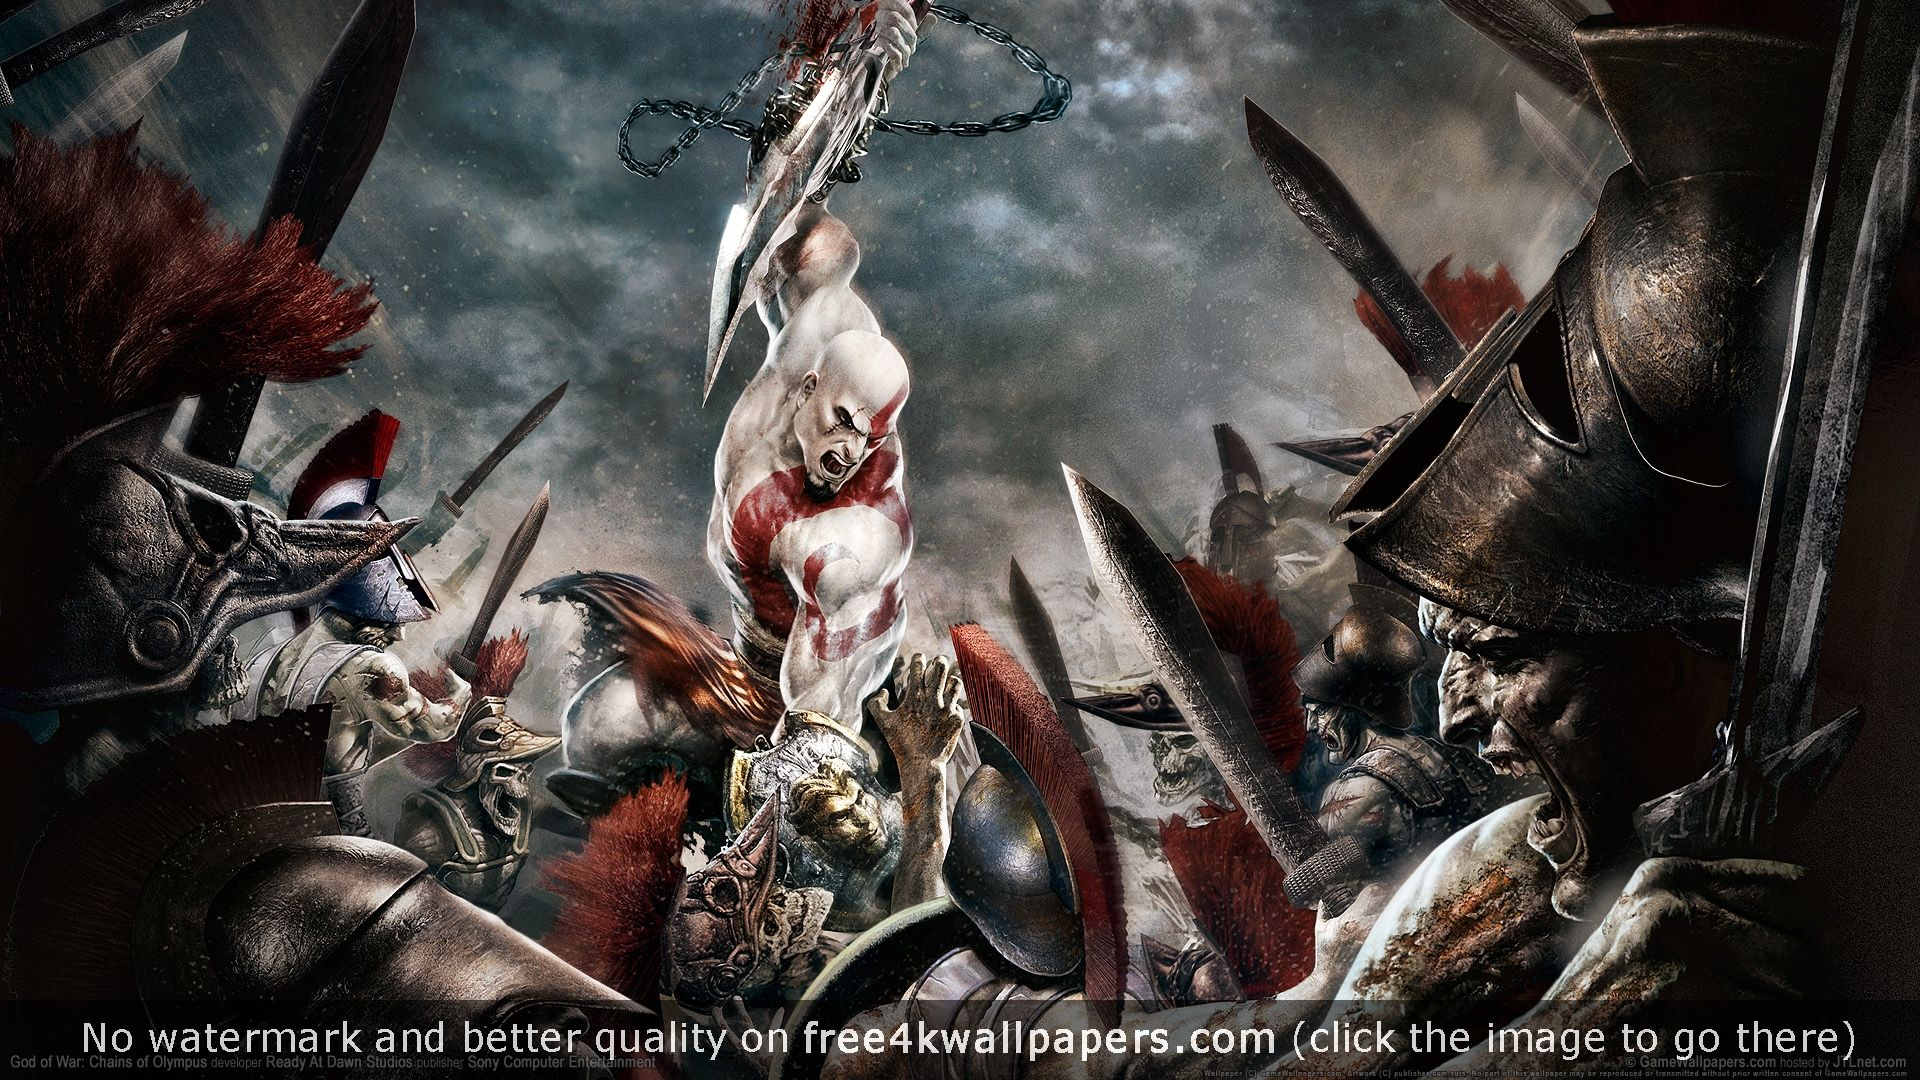 God Of War New Game Hd Wallpaper Download God Of War New Game Hd